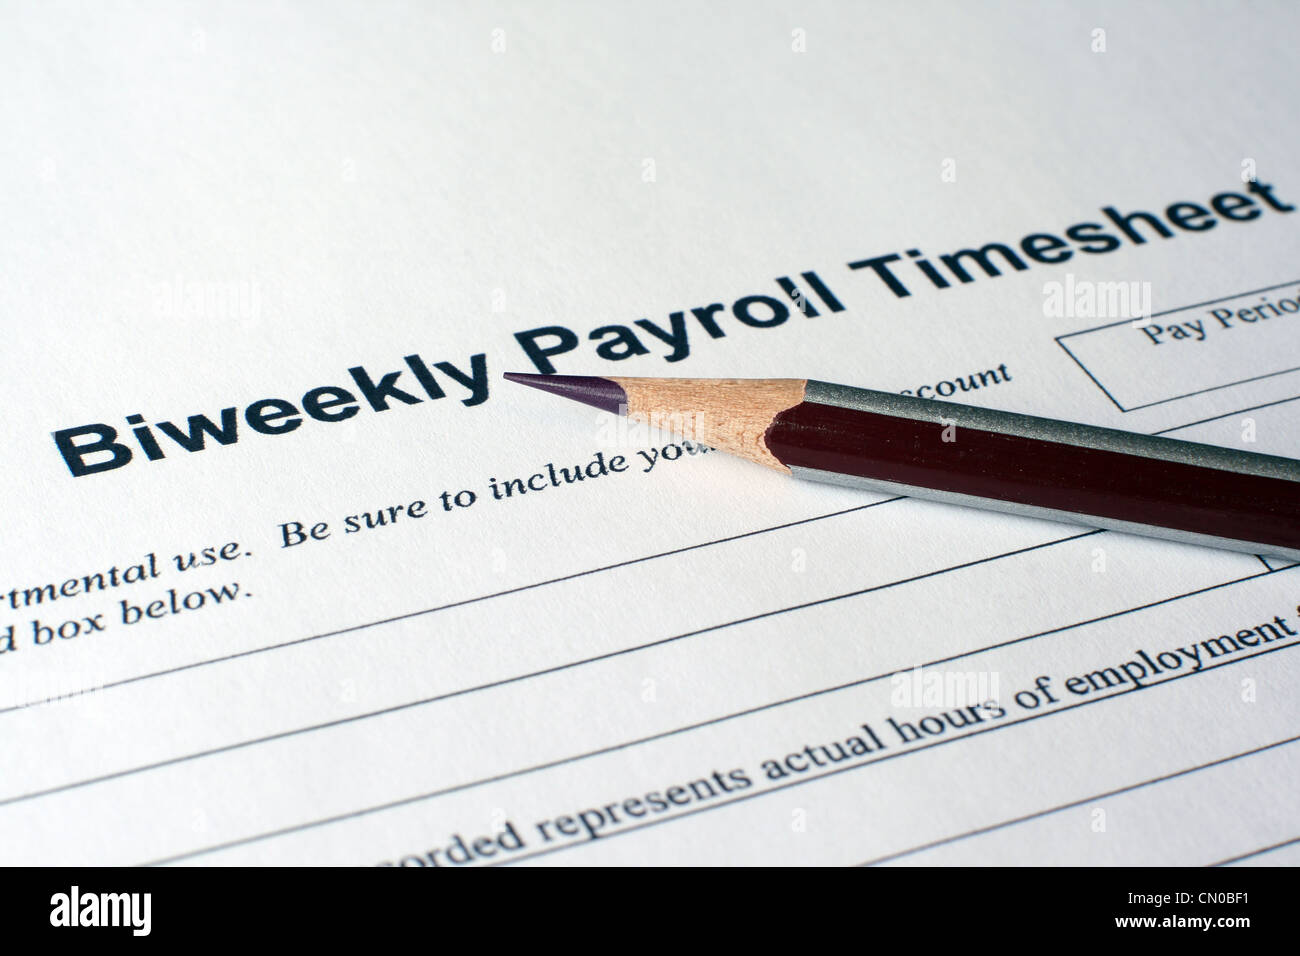 Payroll timesheet Stock Photo  47337557   Alamy Payroll timesheet